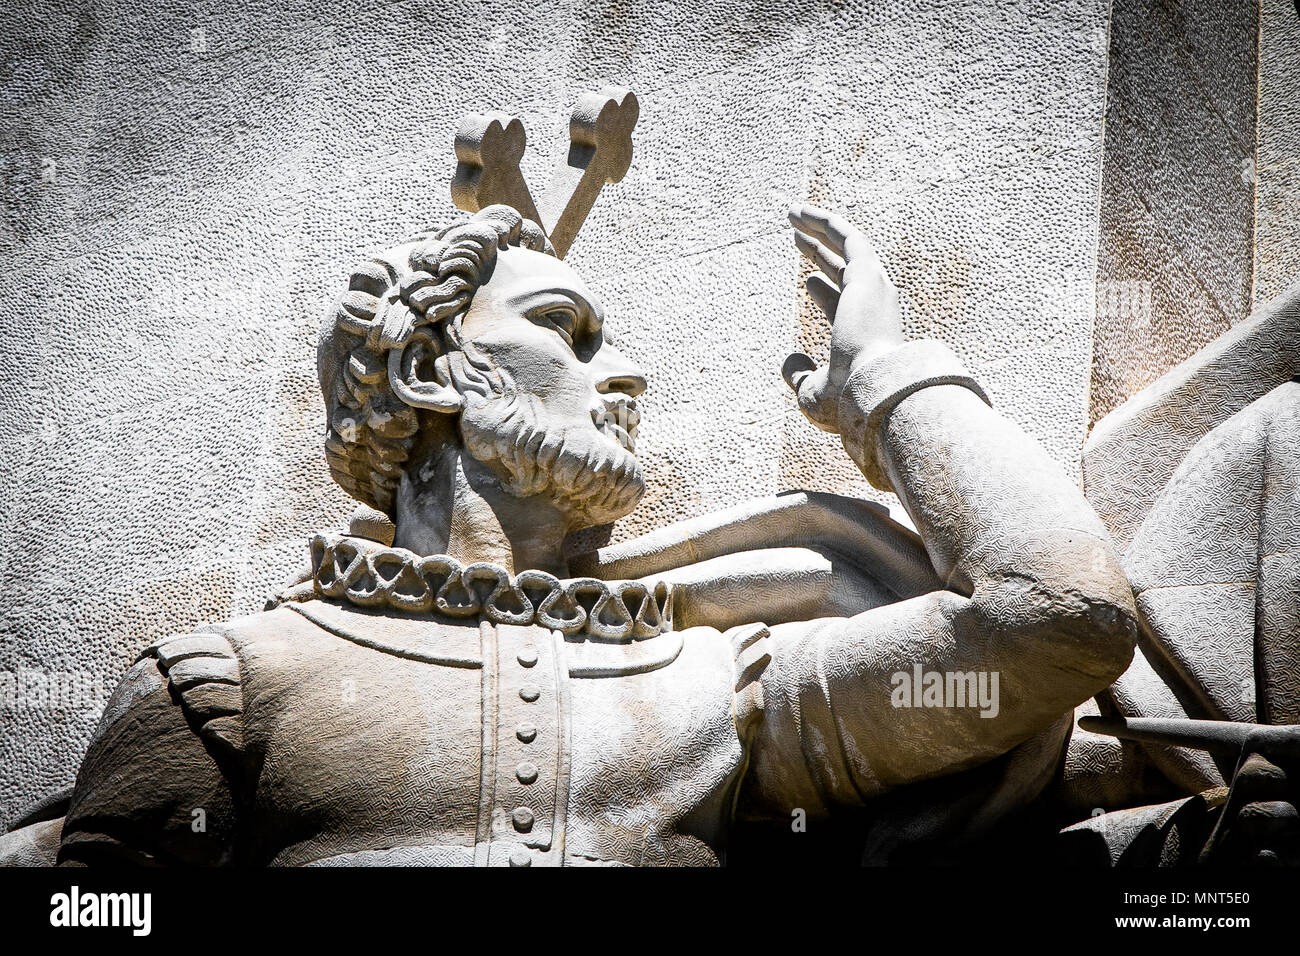 Lisbon, Portugal, May 5, 2018: Statue of Luis Vaz de Camoes, detail of the Monument to the Discoveries. - Stock Image